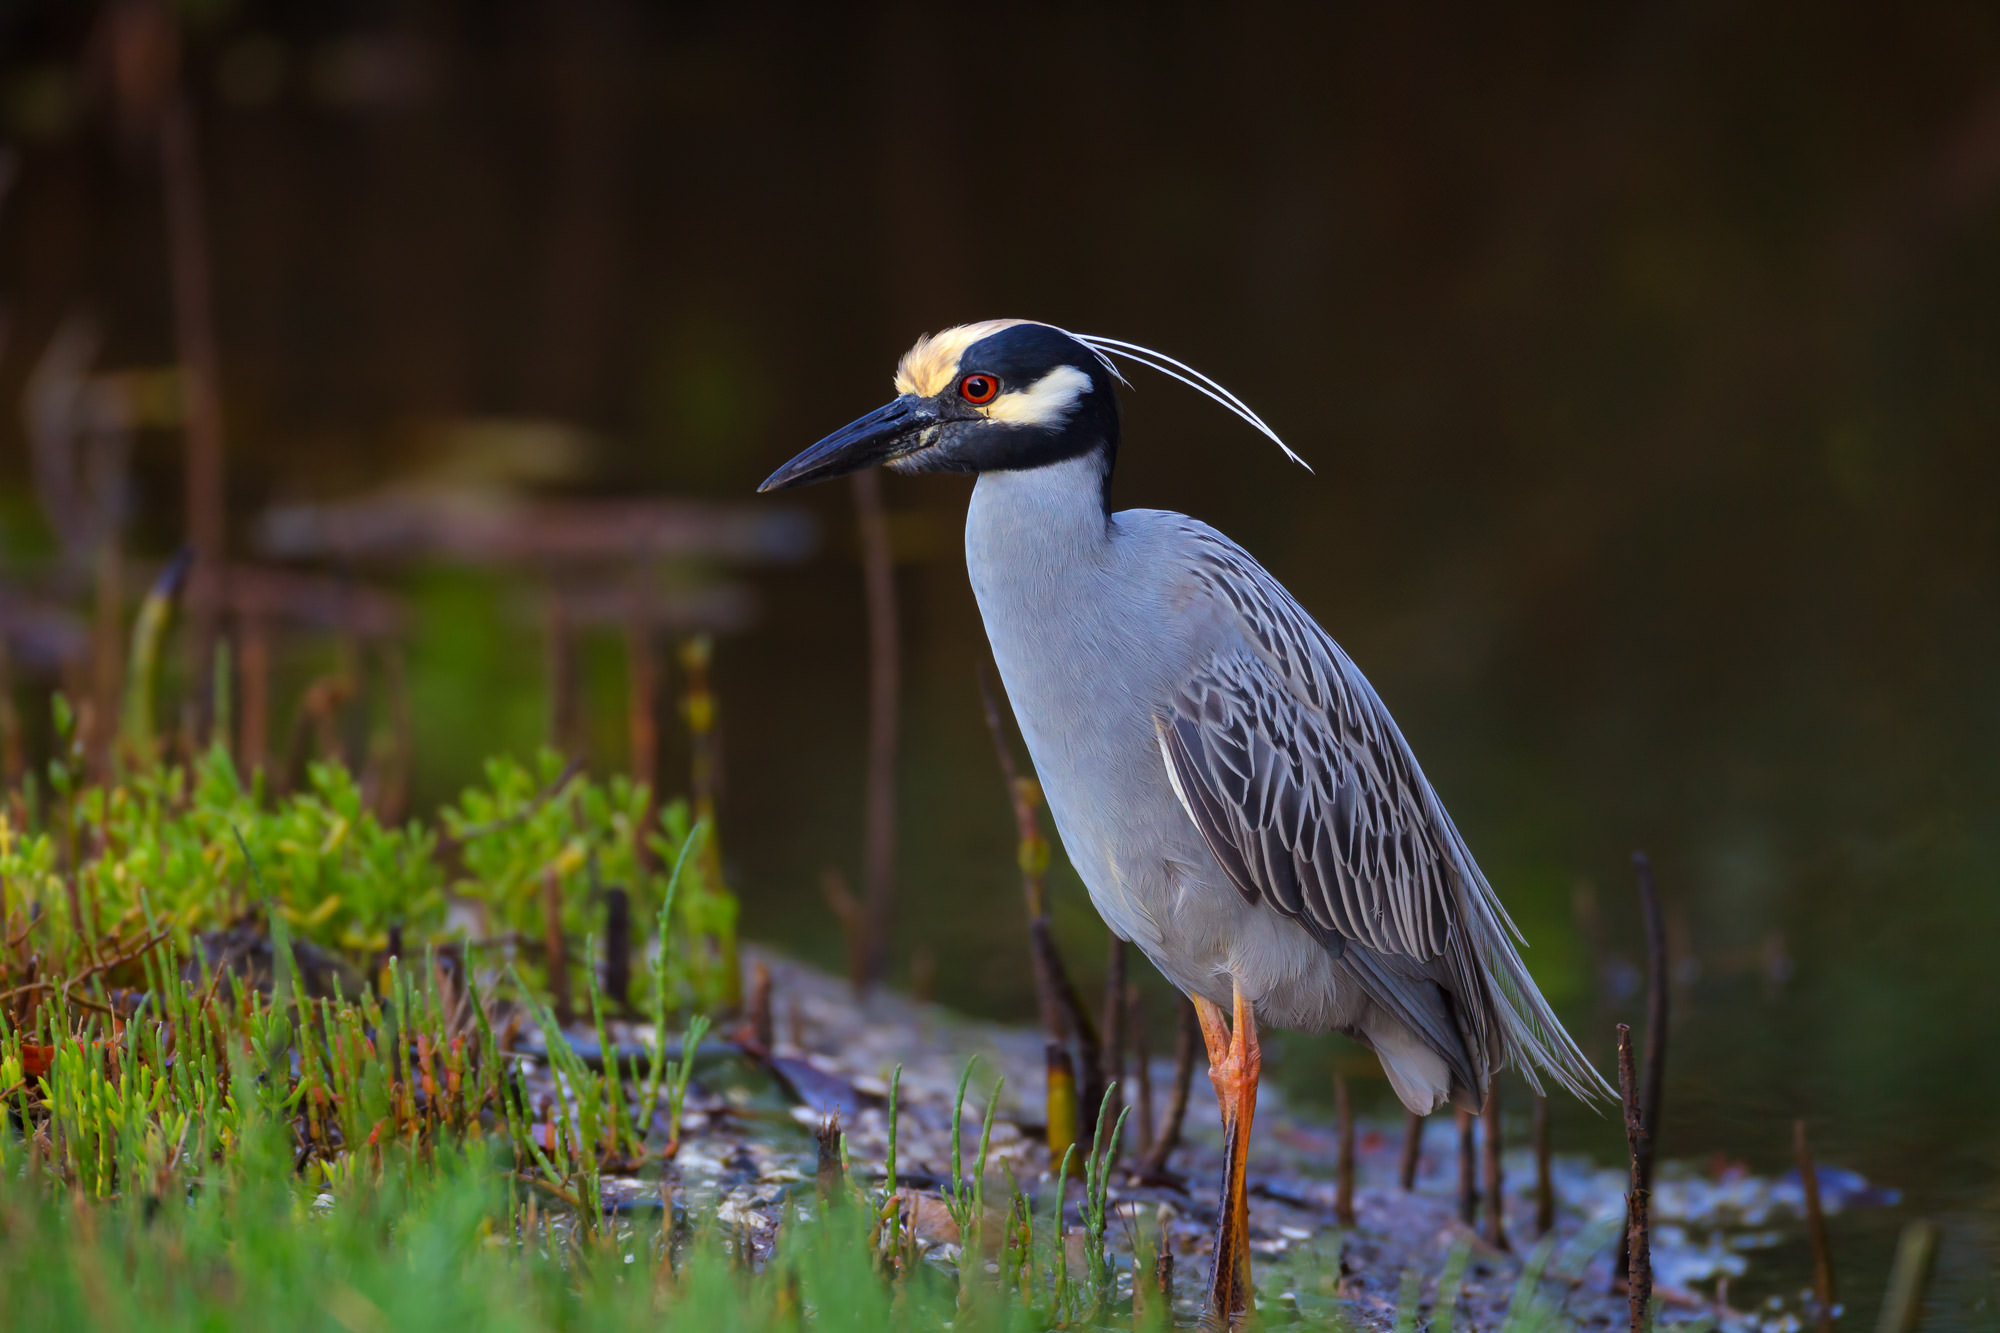 Heron, Yellow Crowned, Night Heron, Florida, limited edition, photograph, fine art, wildlife, bird, photo